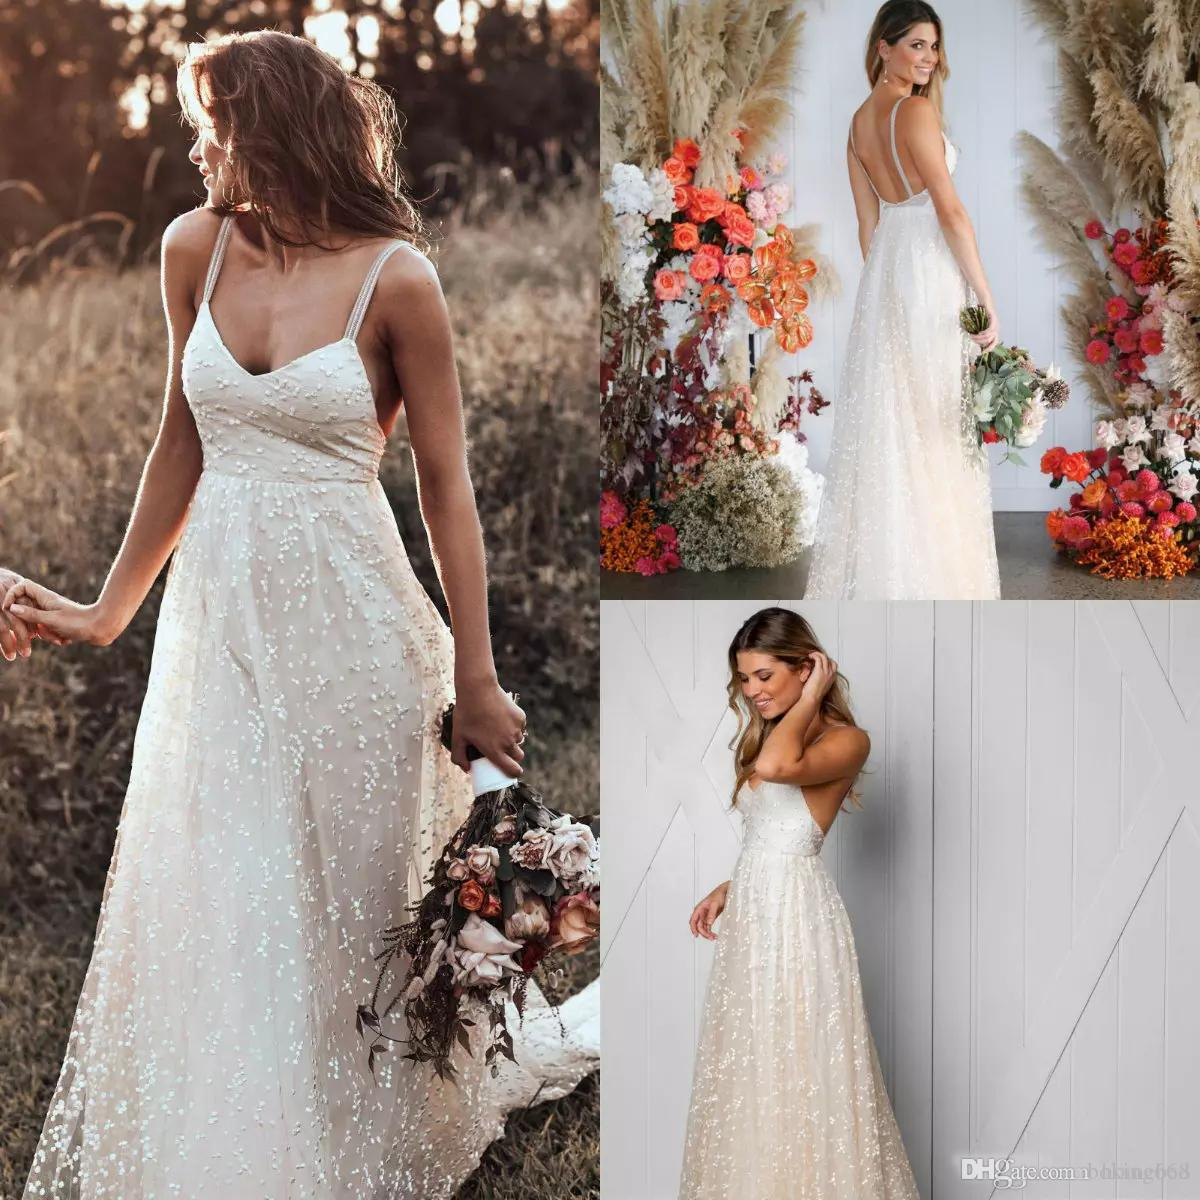 Discount Chic Boho Wedding Dresses 2019 Spaghetti Lace Spot Tulle Sexy Backless Sweep Train Bohemian Dress Custom Made Plus Size Bridal Gowns Search: Short Wedding Dress Boho Chic At Websimilar.org